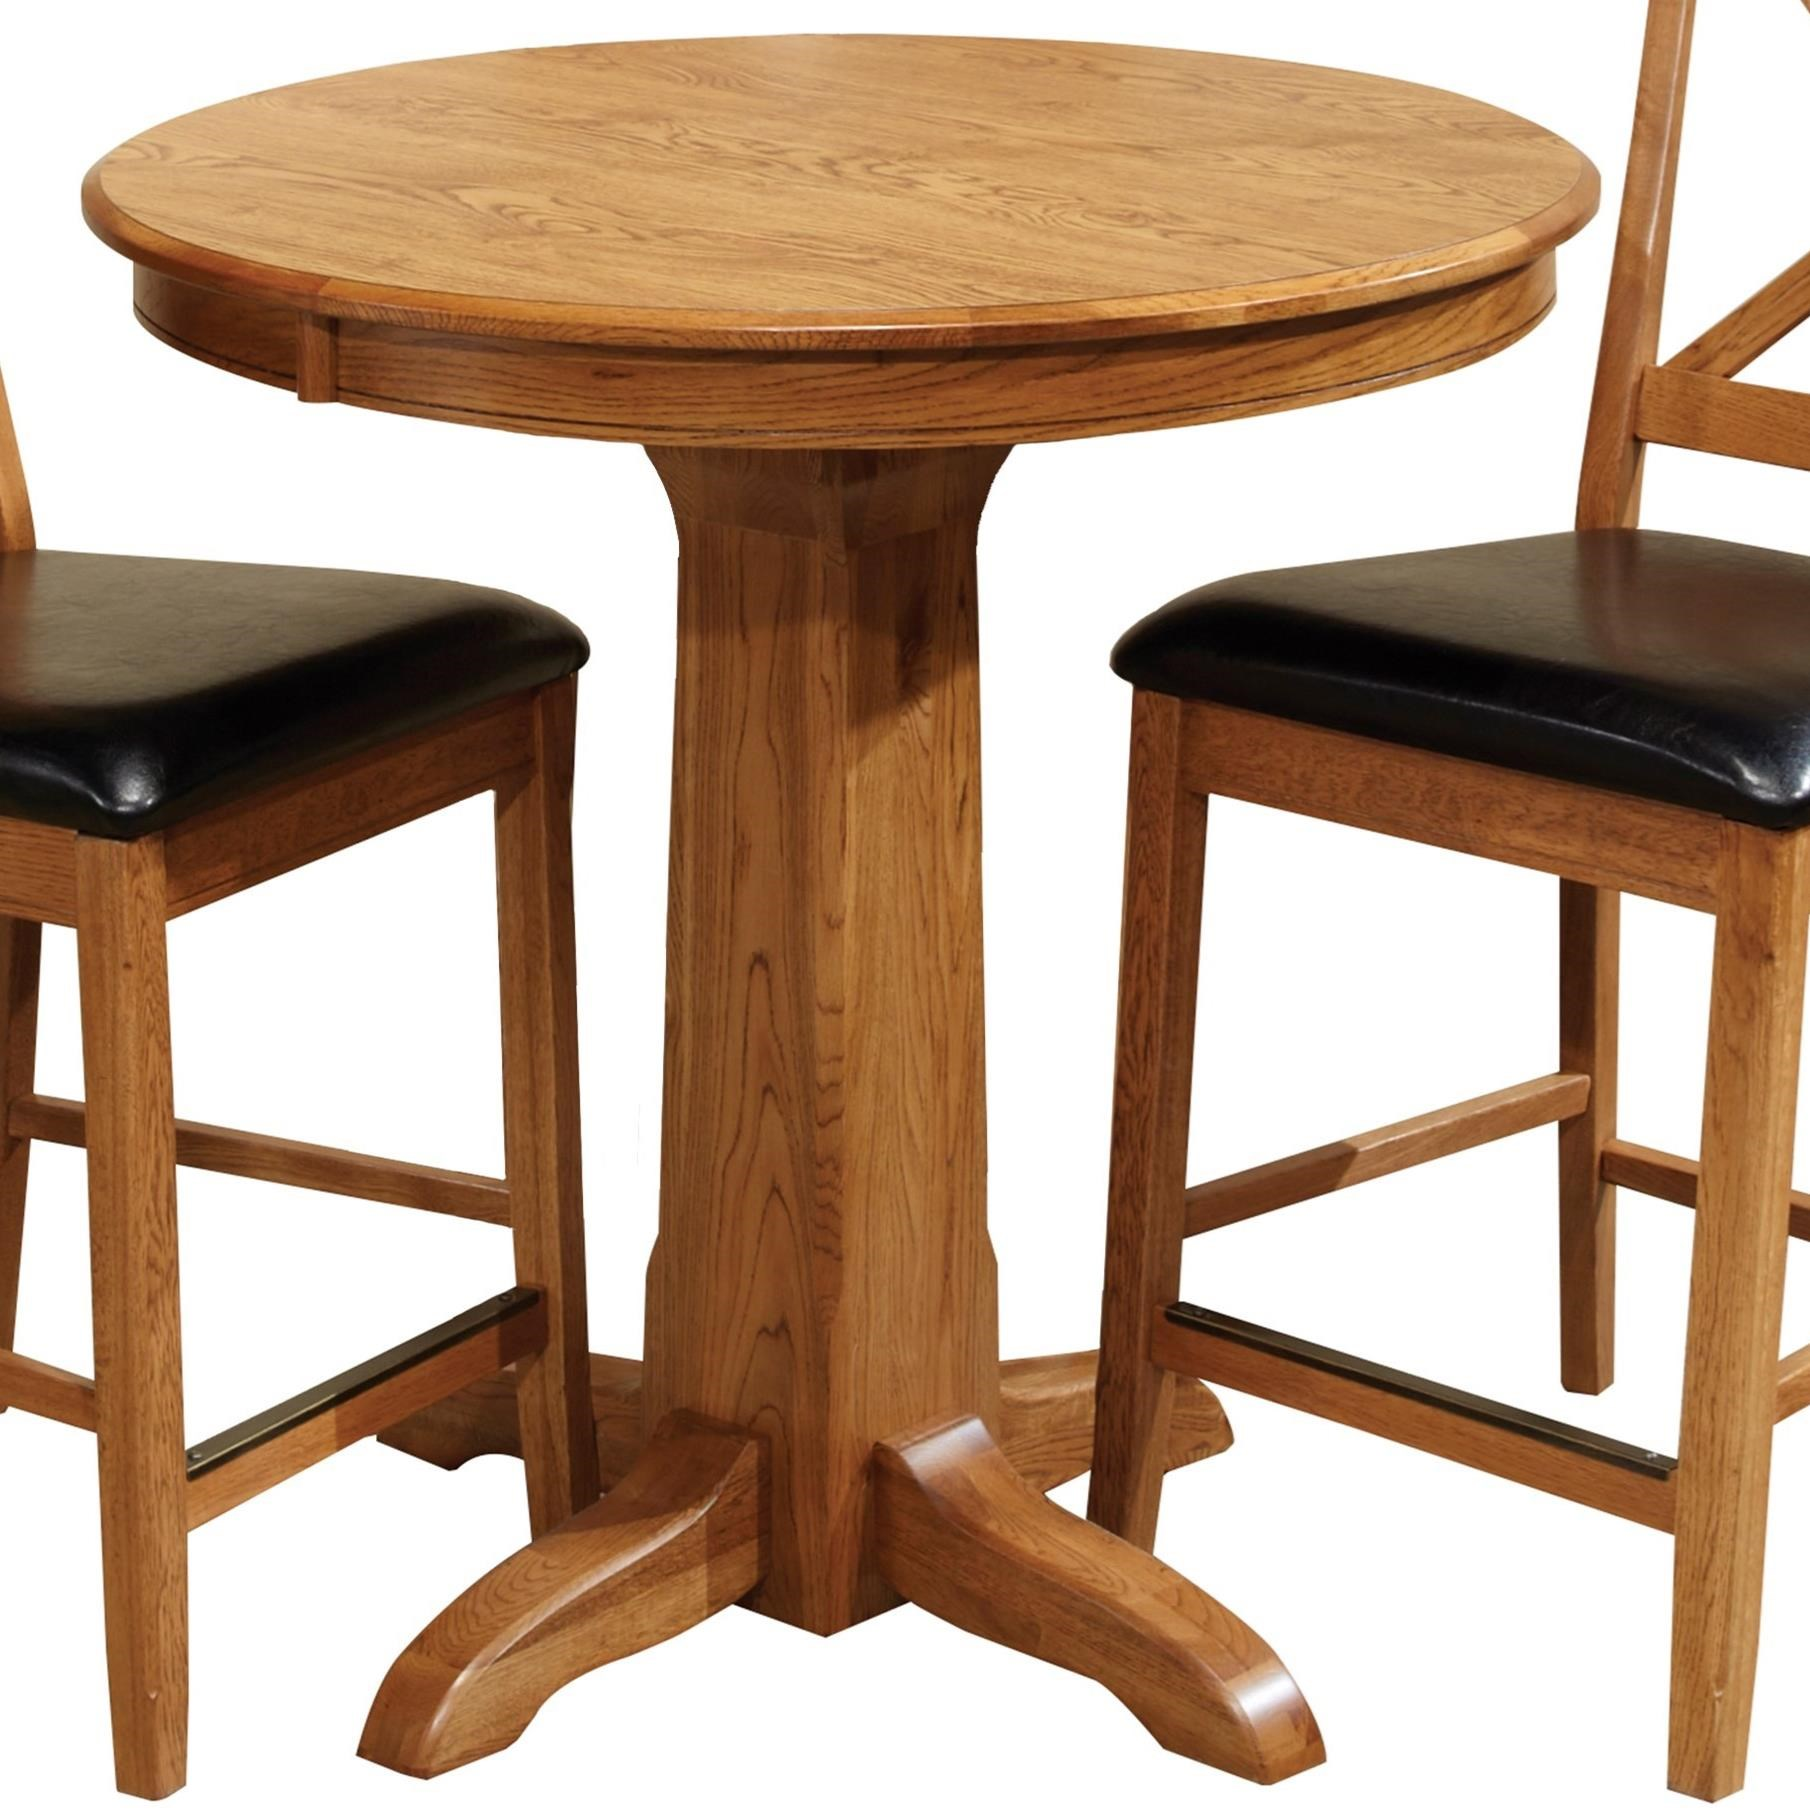 Intercon Family Dining Round Counter Table - Item Number: FD-TA-L36GS-CNT-BSE+TOP